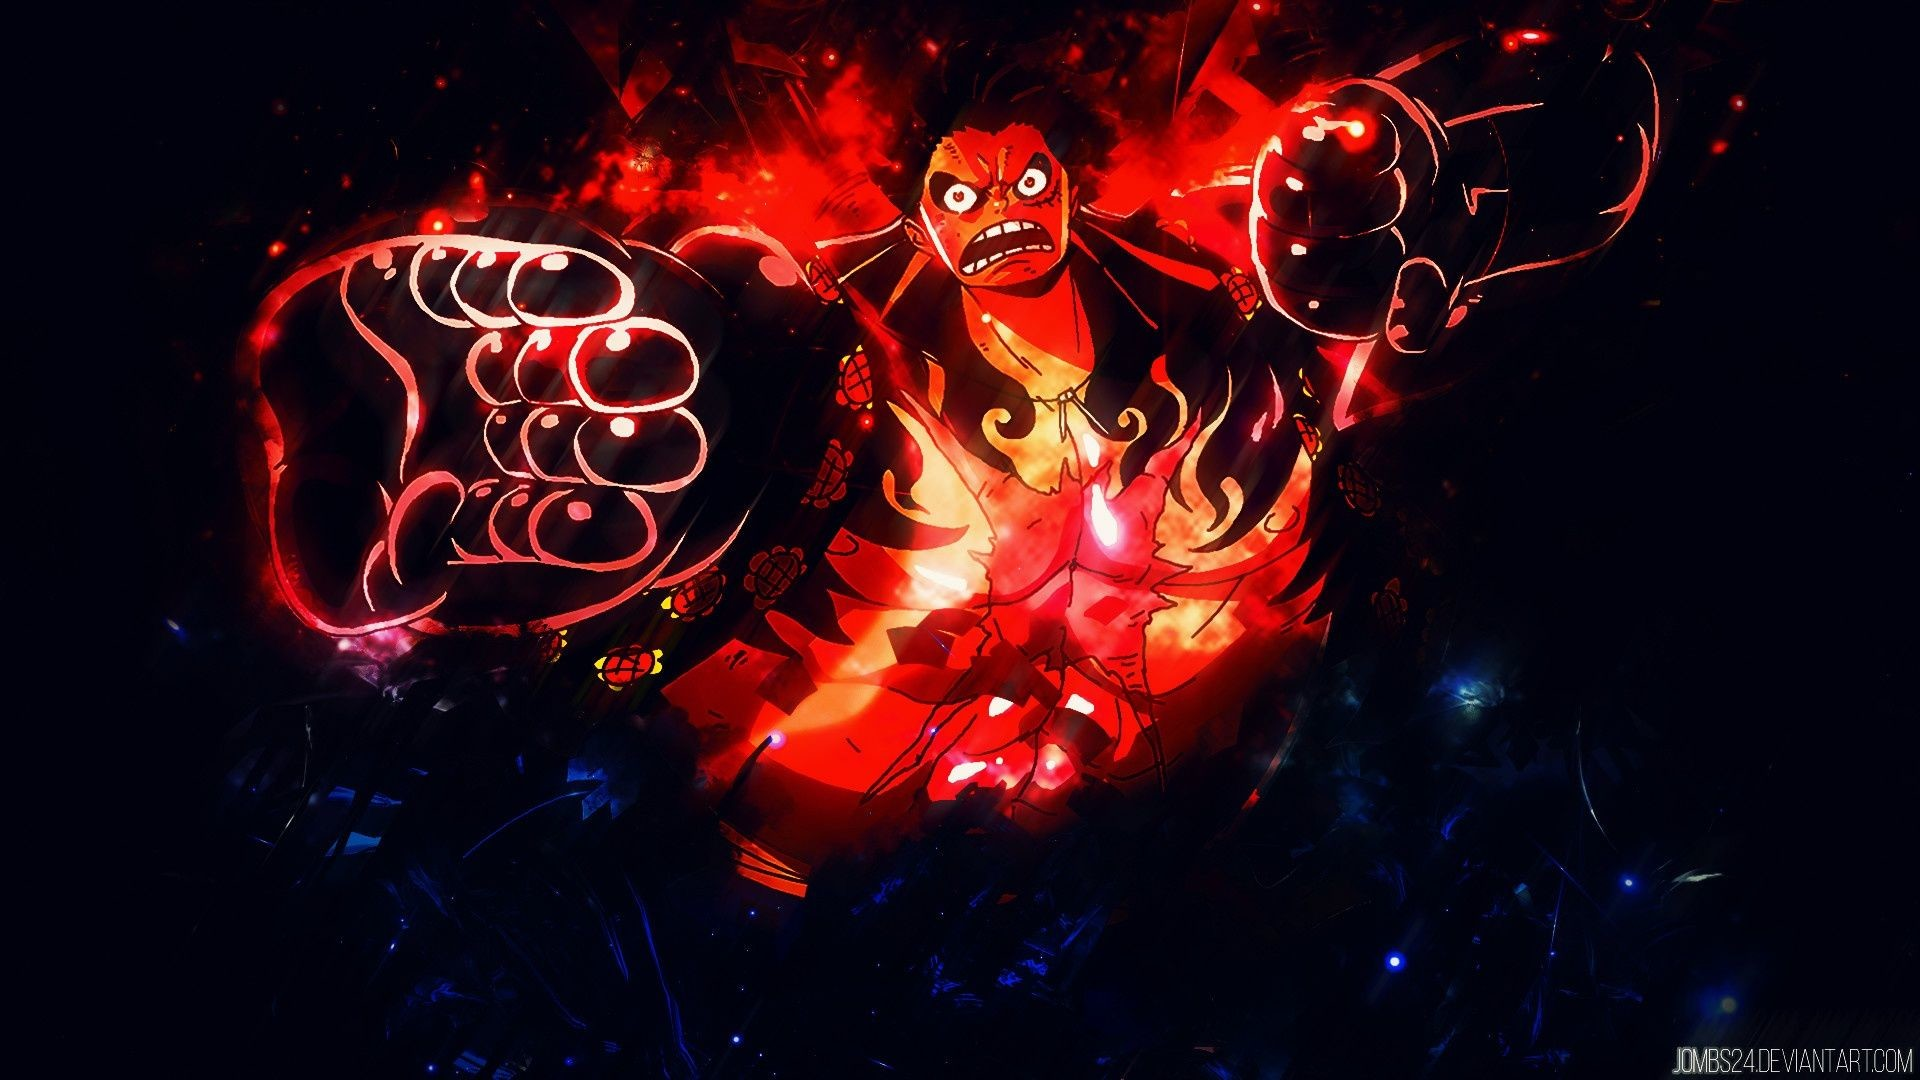 Making animation luffy gear 4th one piece live wallpaper engine pc mobile ver trim. Luffy Gear 4 Wallpapers ·① WallpaperTag